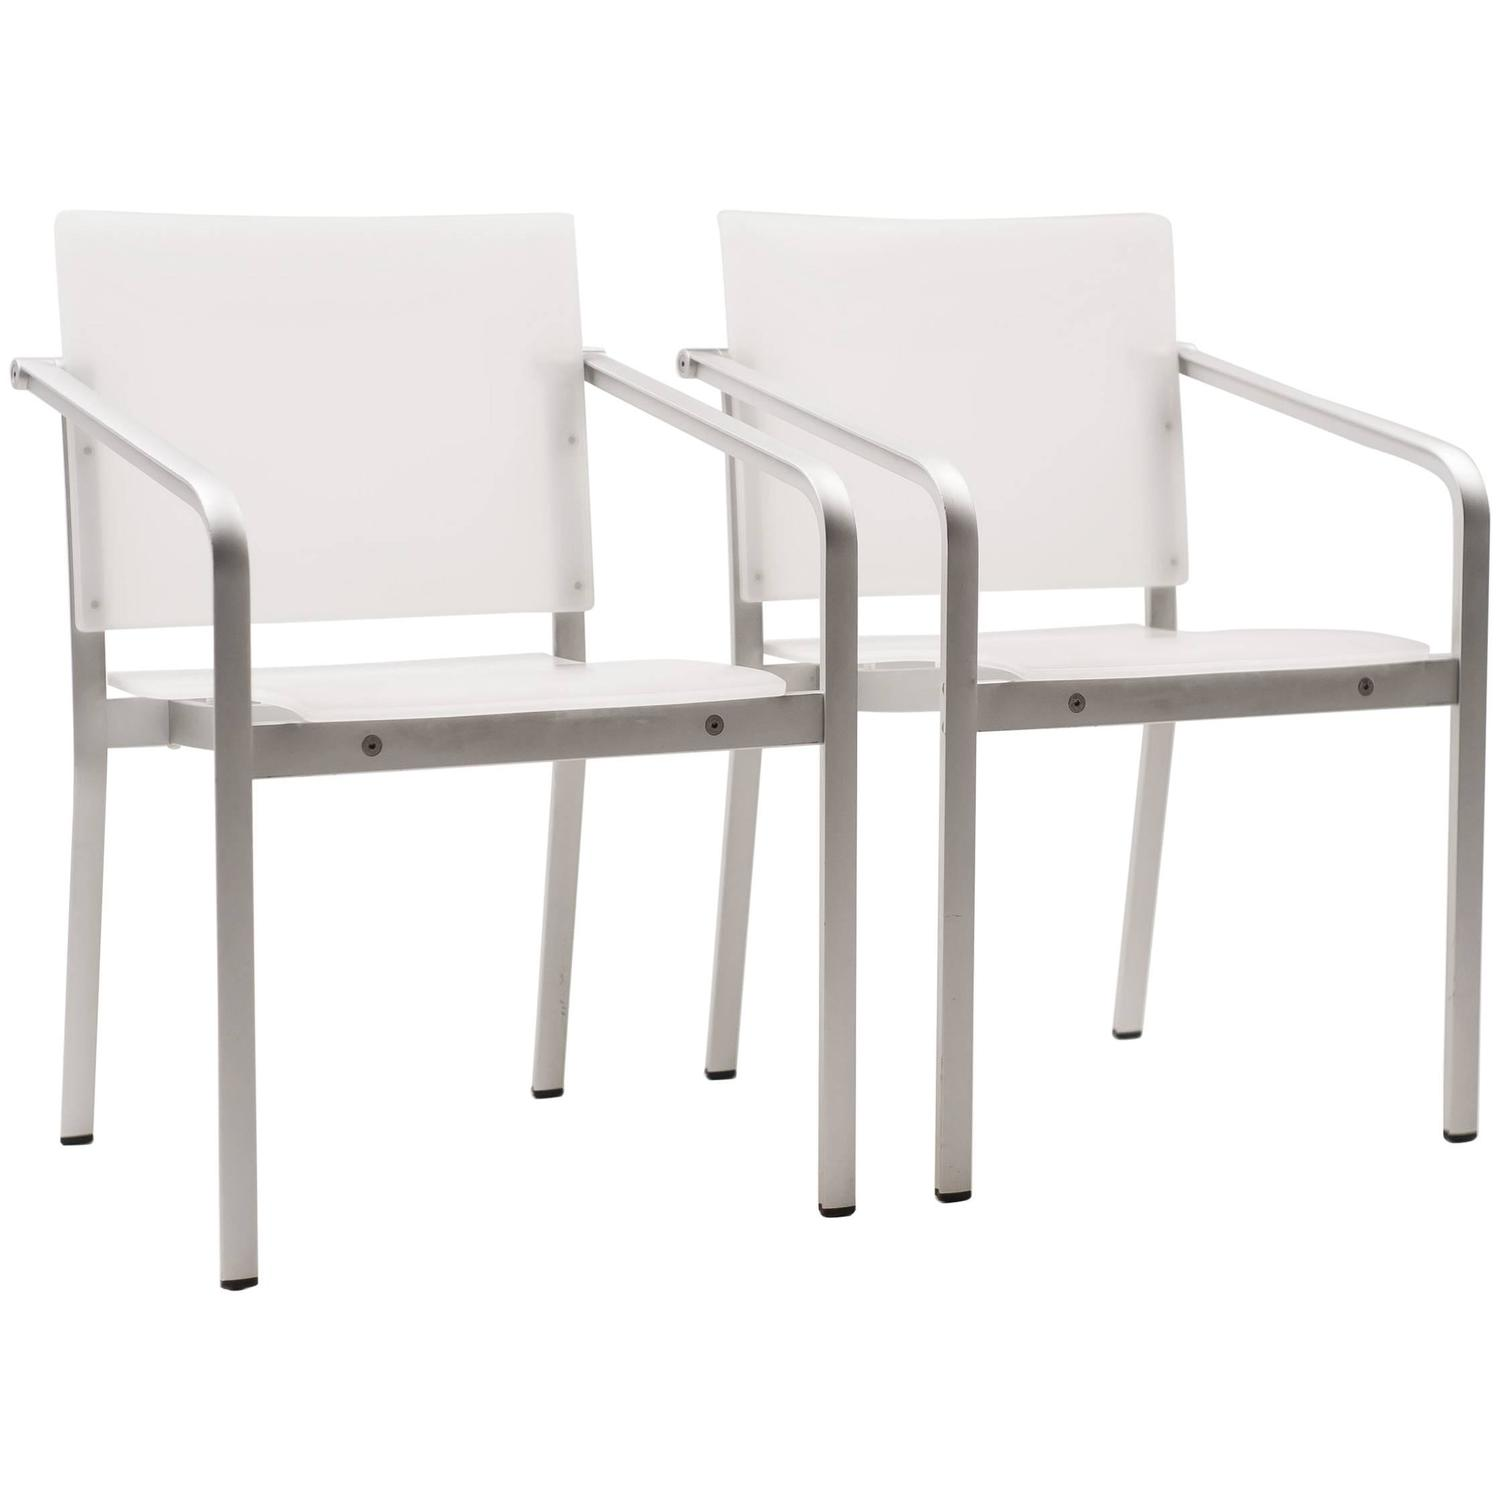 Pair Of Thonet Chairs By Sir Norman Foster, Model A 900 At 1stdibs